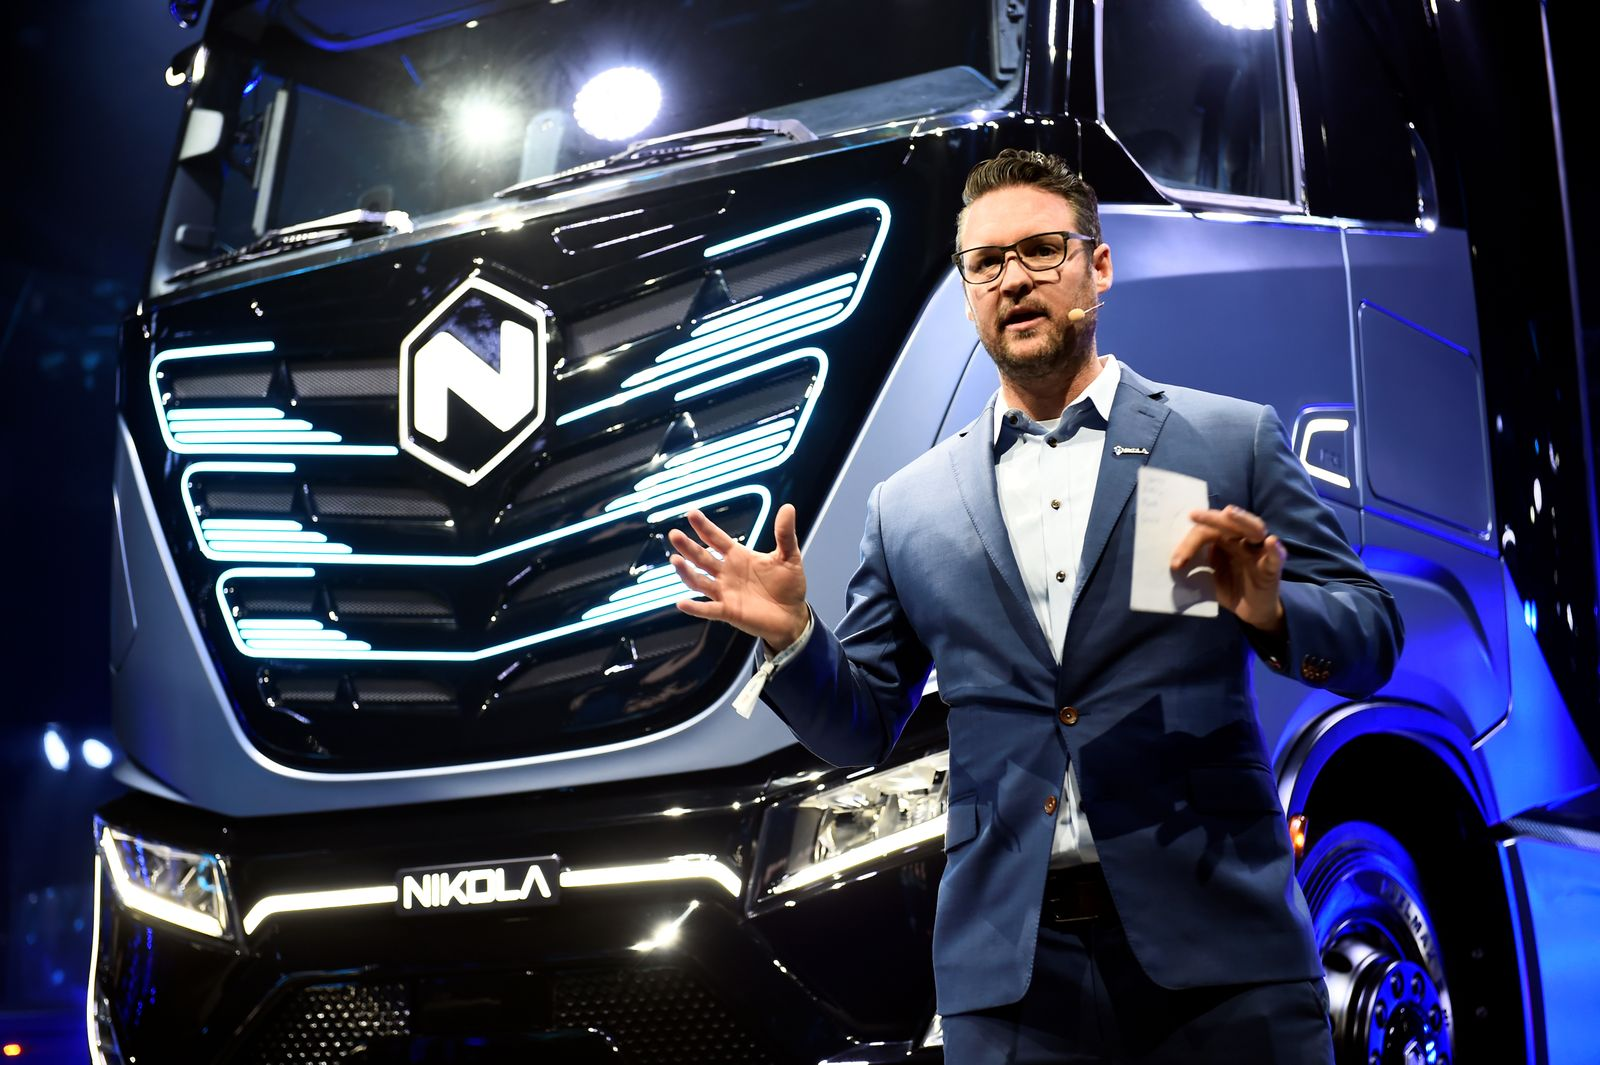 CEO and founder of U.S. Nikola, Trevor Milton speaks during presentation of its new full-electric and hydrogen fuel-cell battery trucks in partnership with CNH Industrial, at an event in Turin